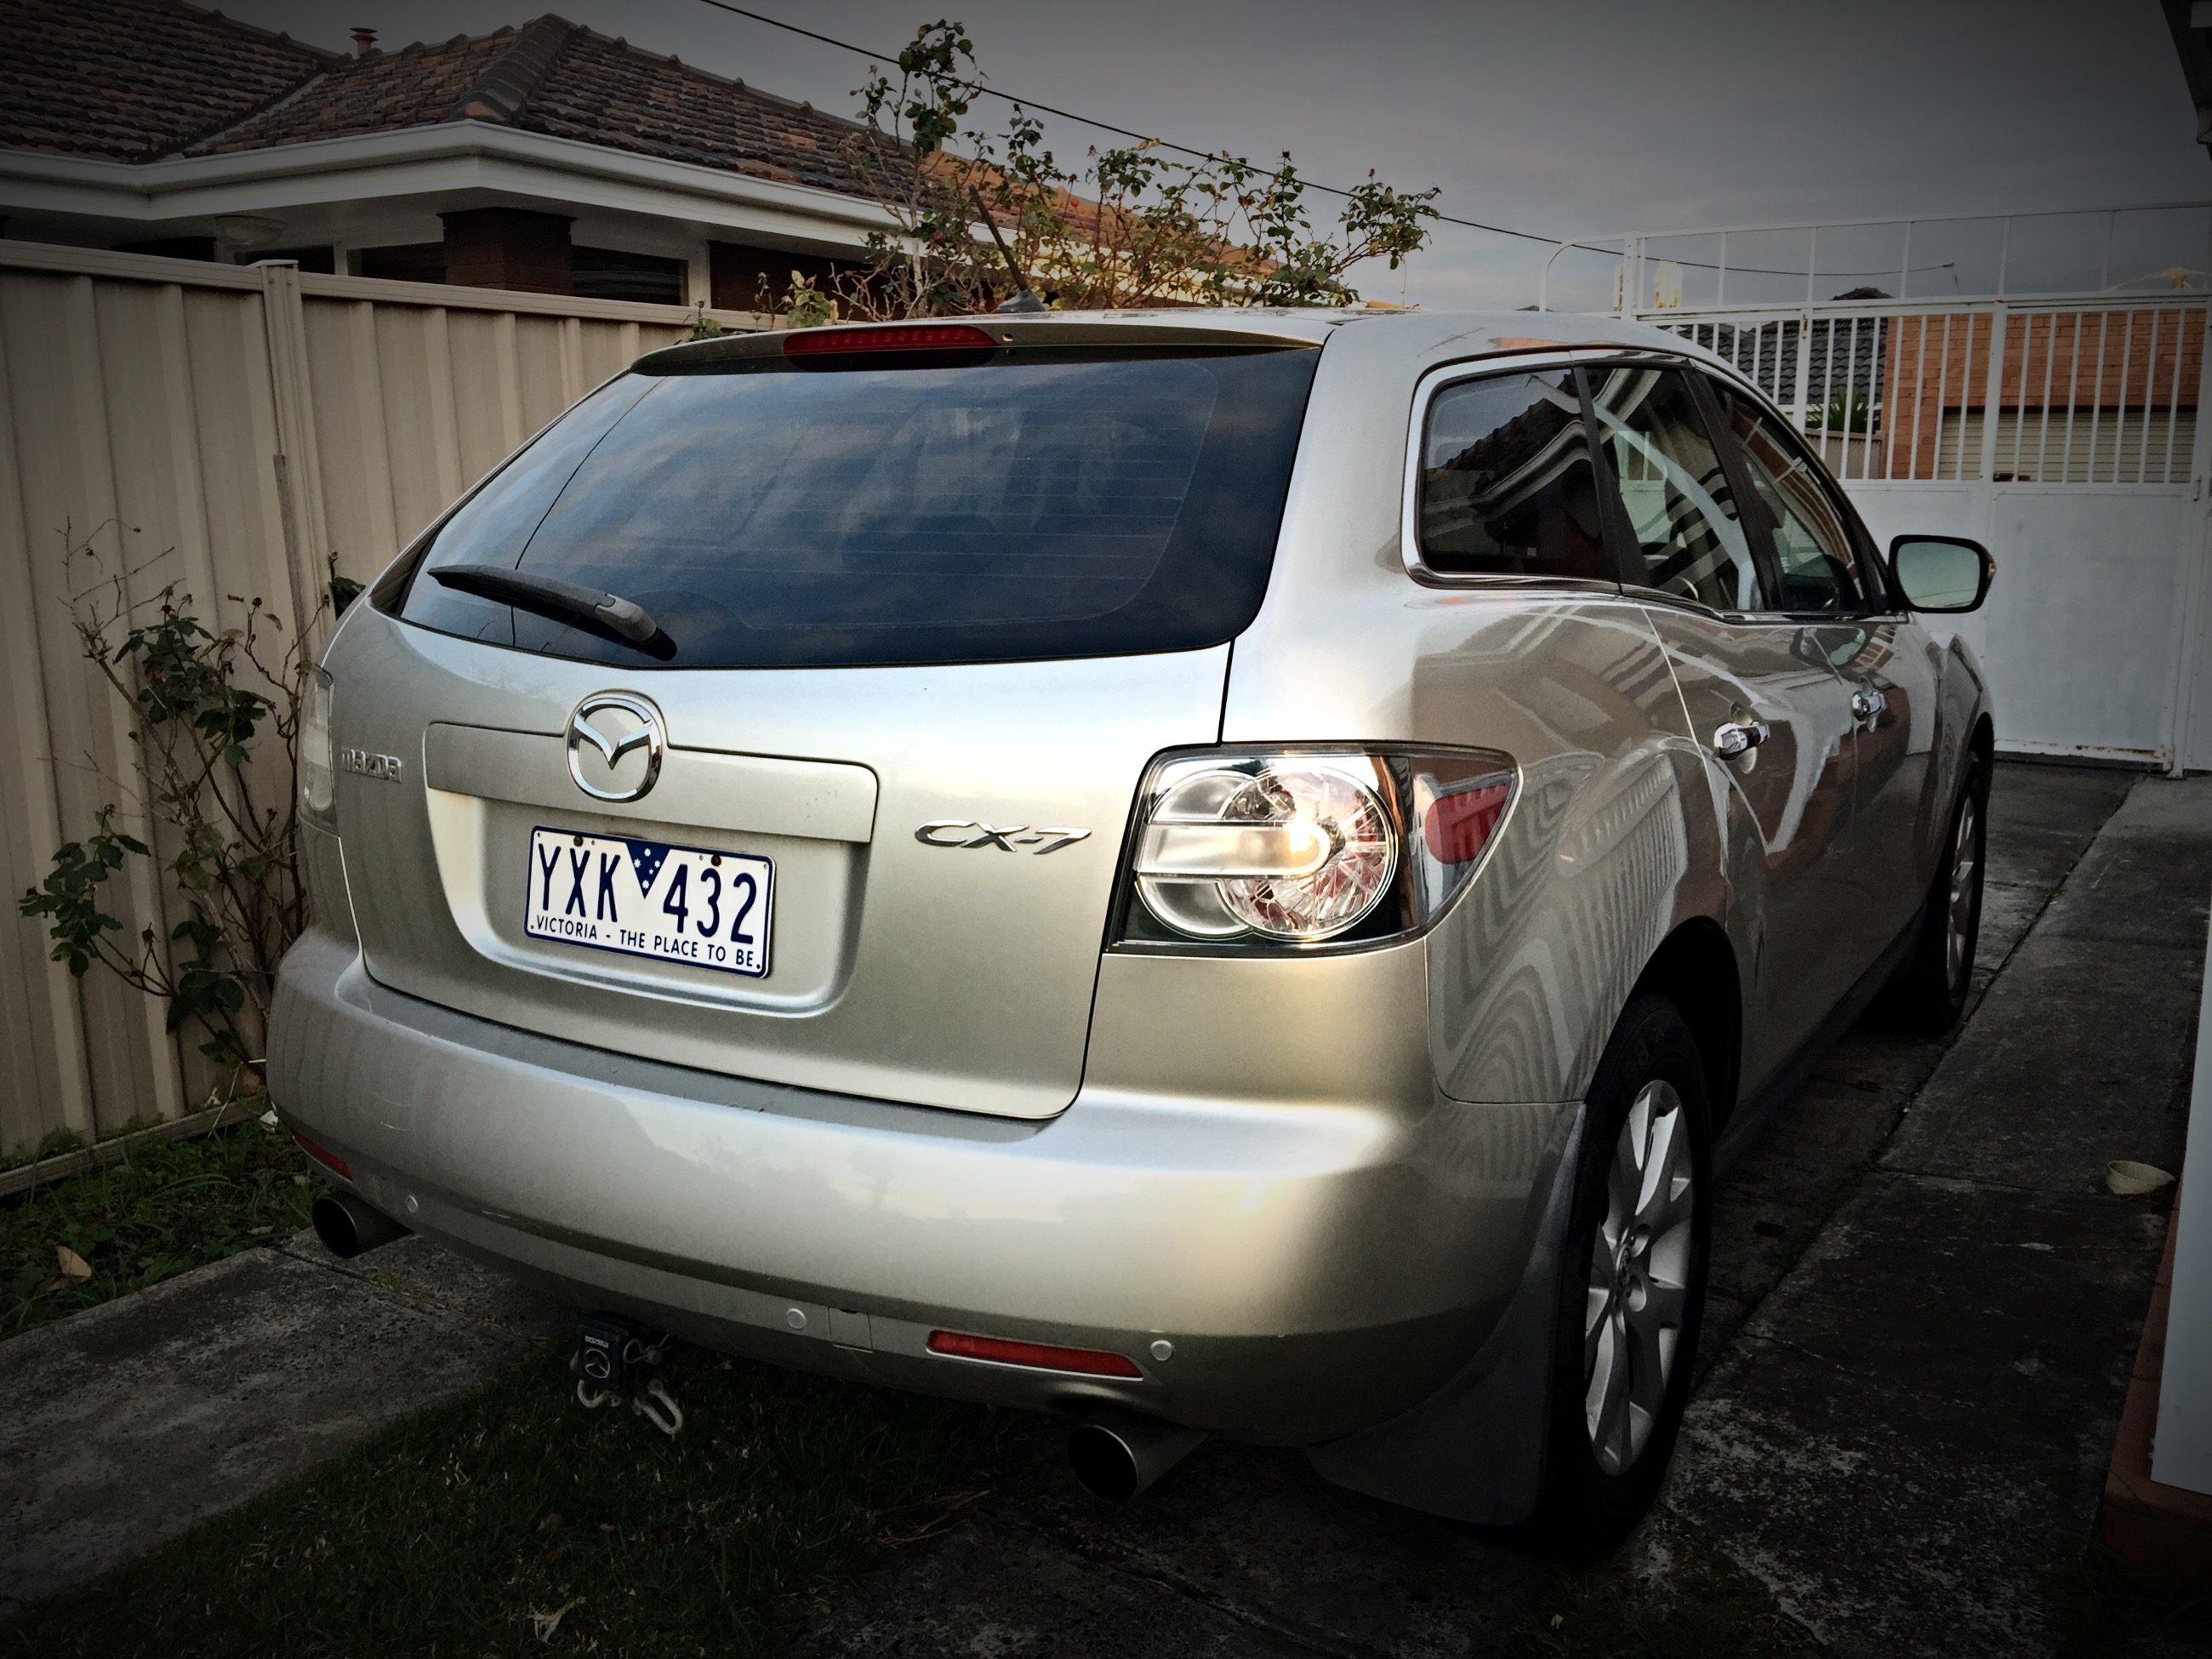 2007 mazda cx 7 luxury 4x4 er car sales vic melbourne. Black Bedroom Furniture Sets. Home Design Ideas